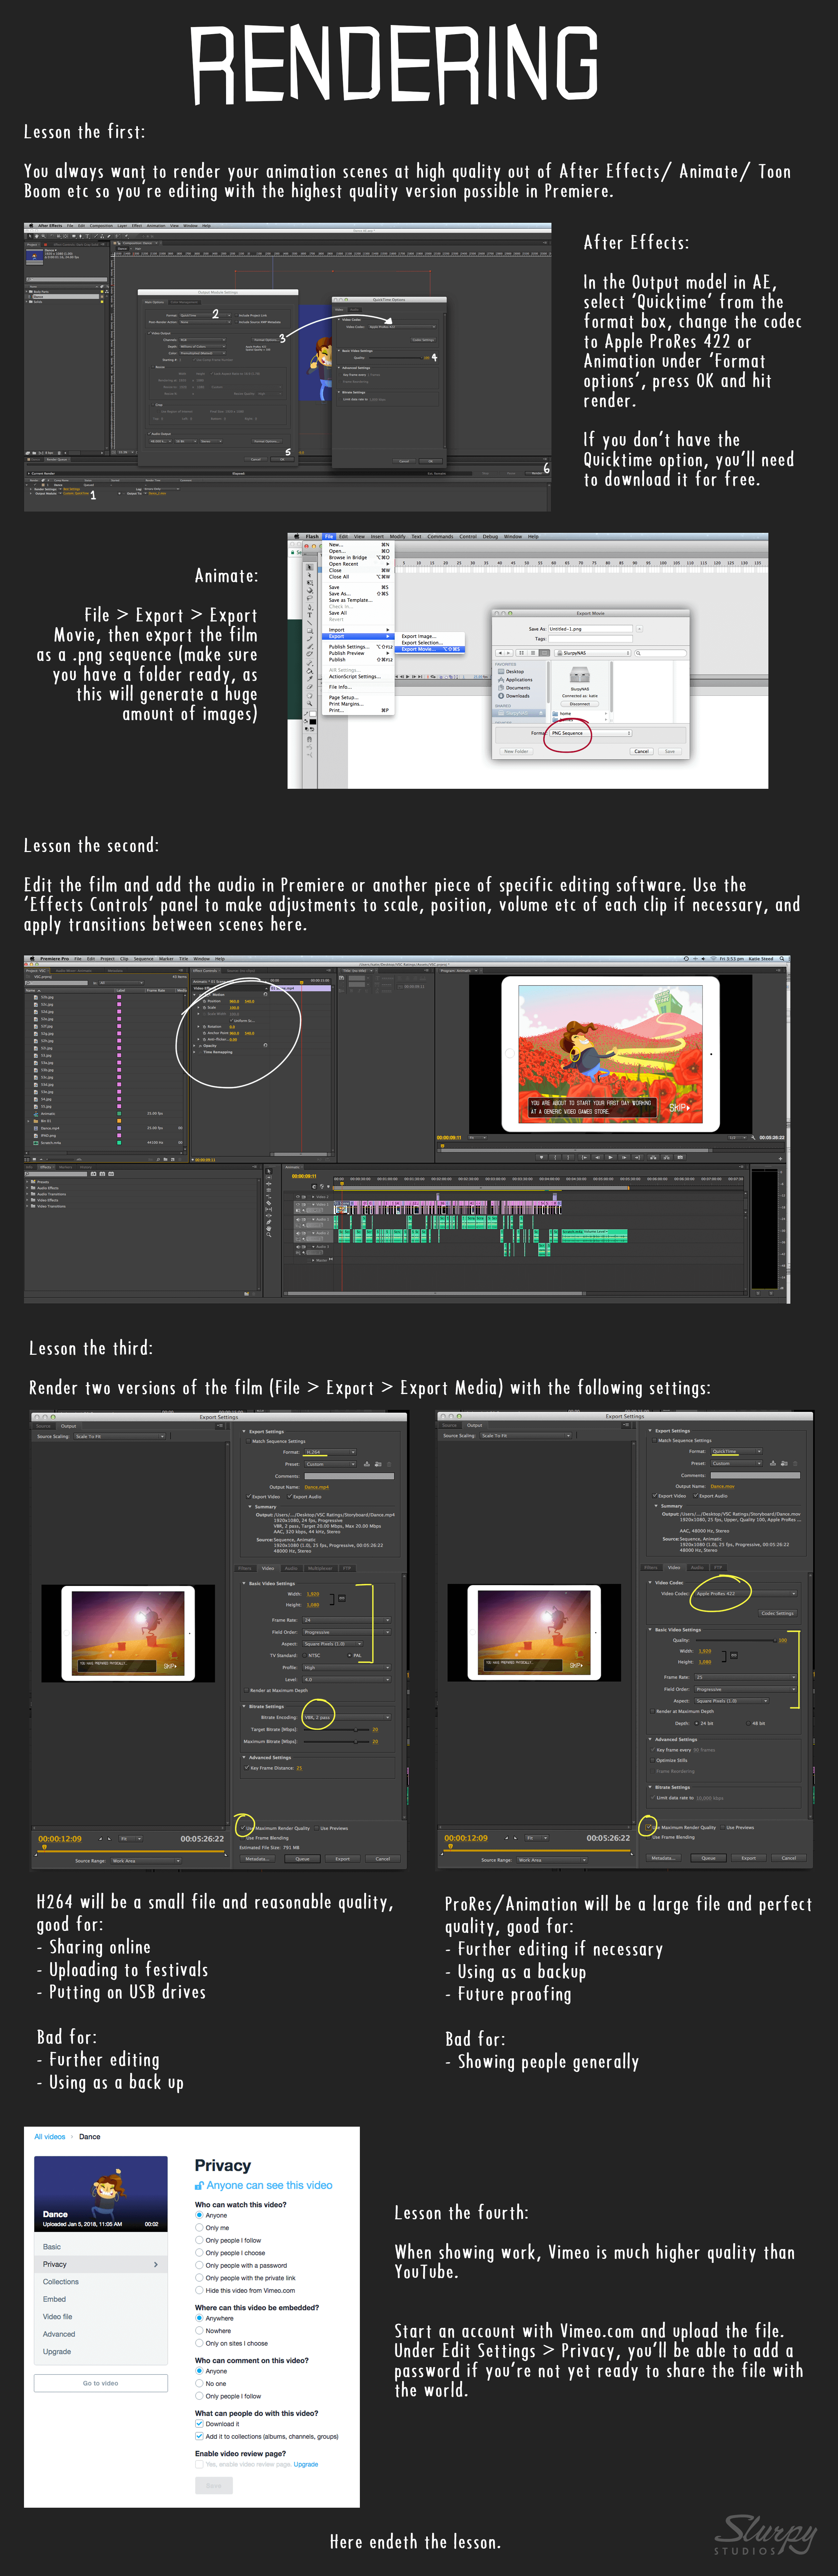 A guide to rendering your animation project: codecs, compression and settings